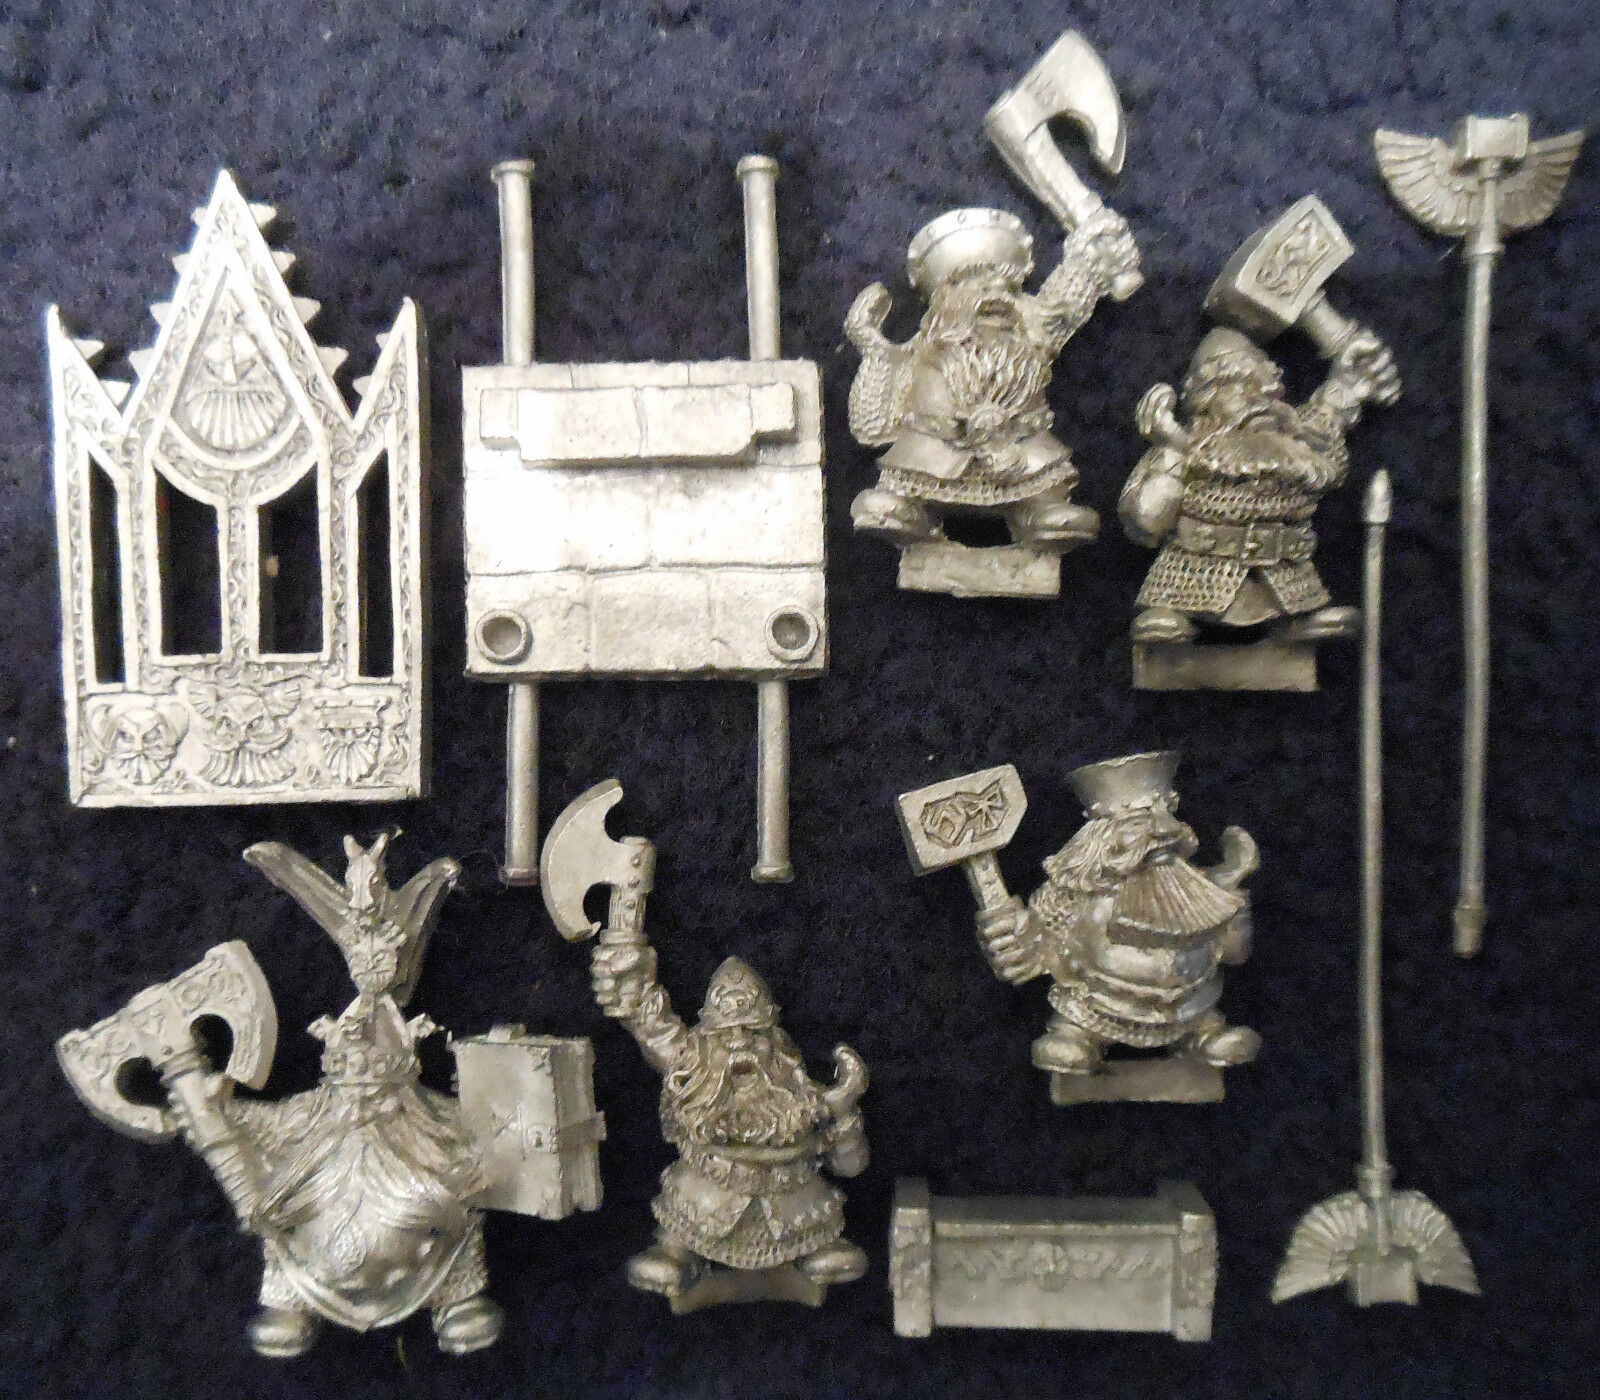 1992 dwarf king's throne of power 0828 citadelle thorgrim nains warhammer armée